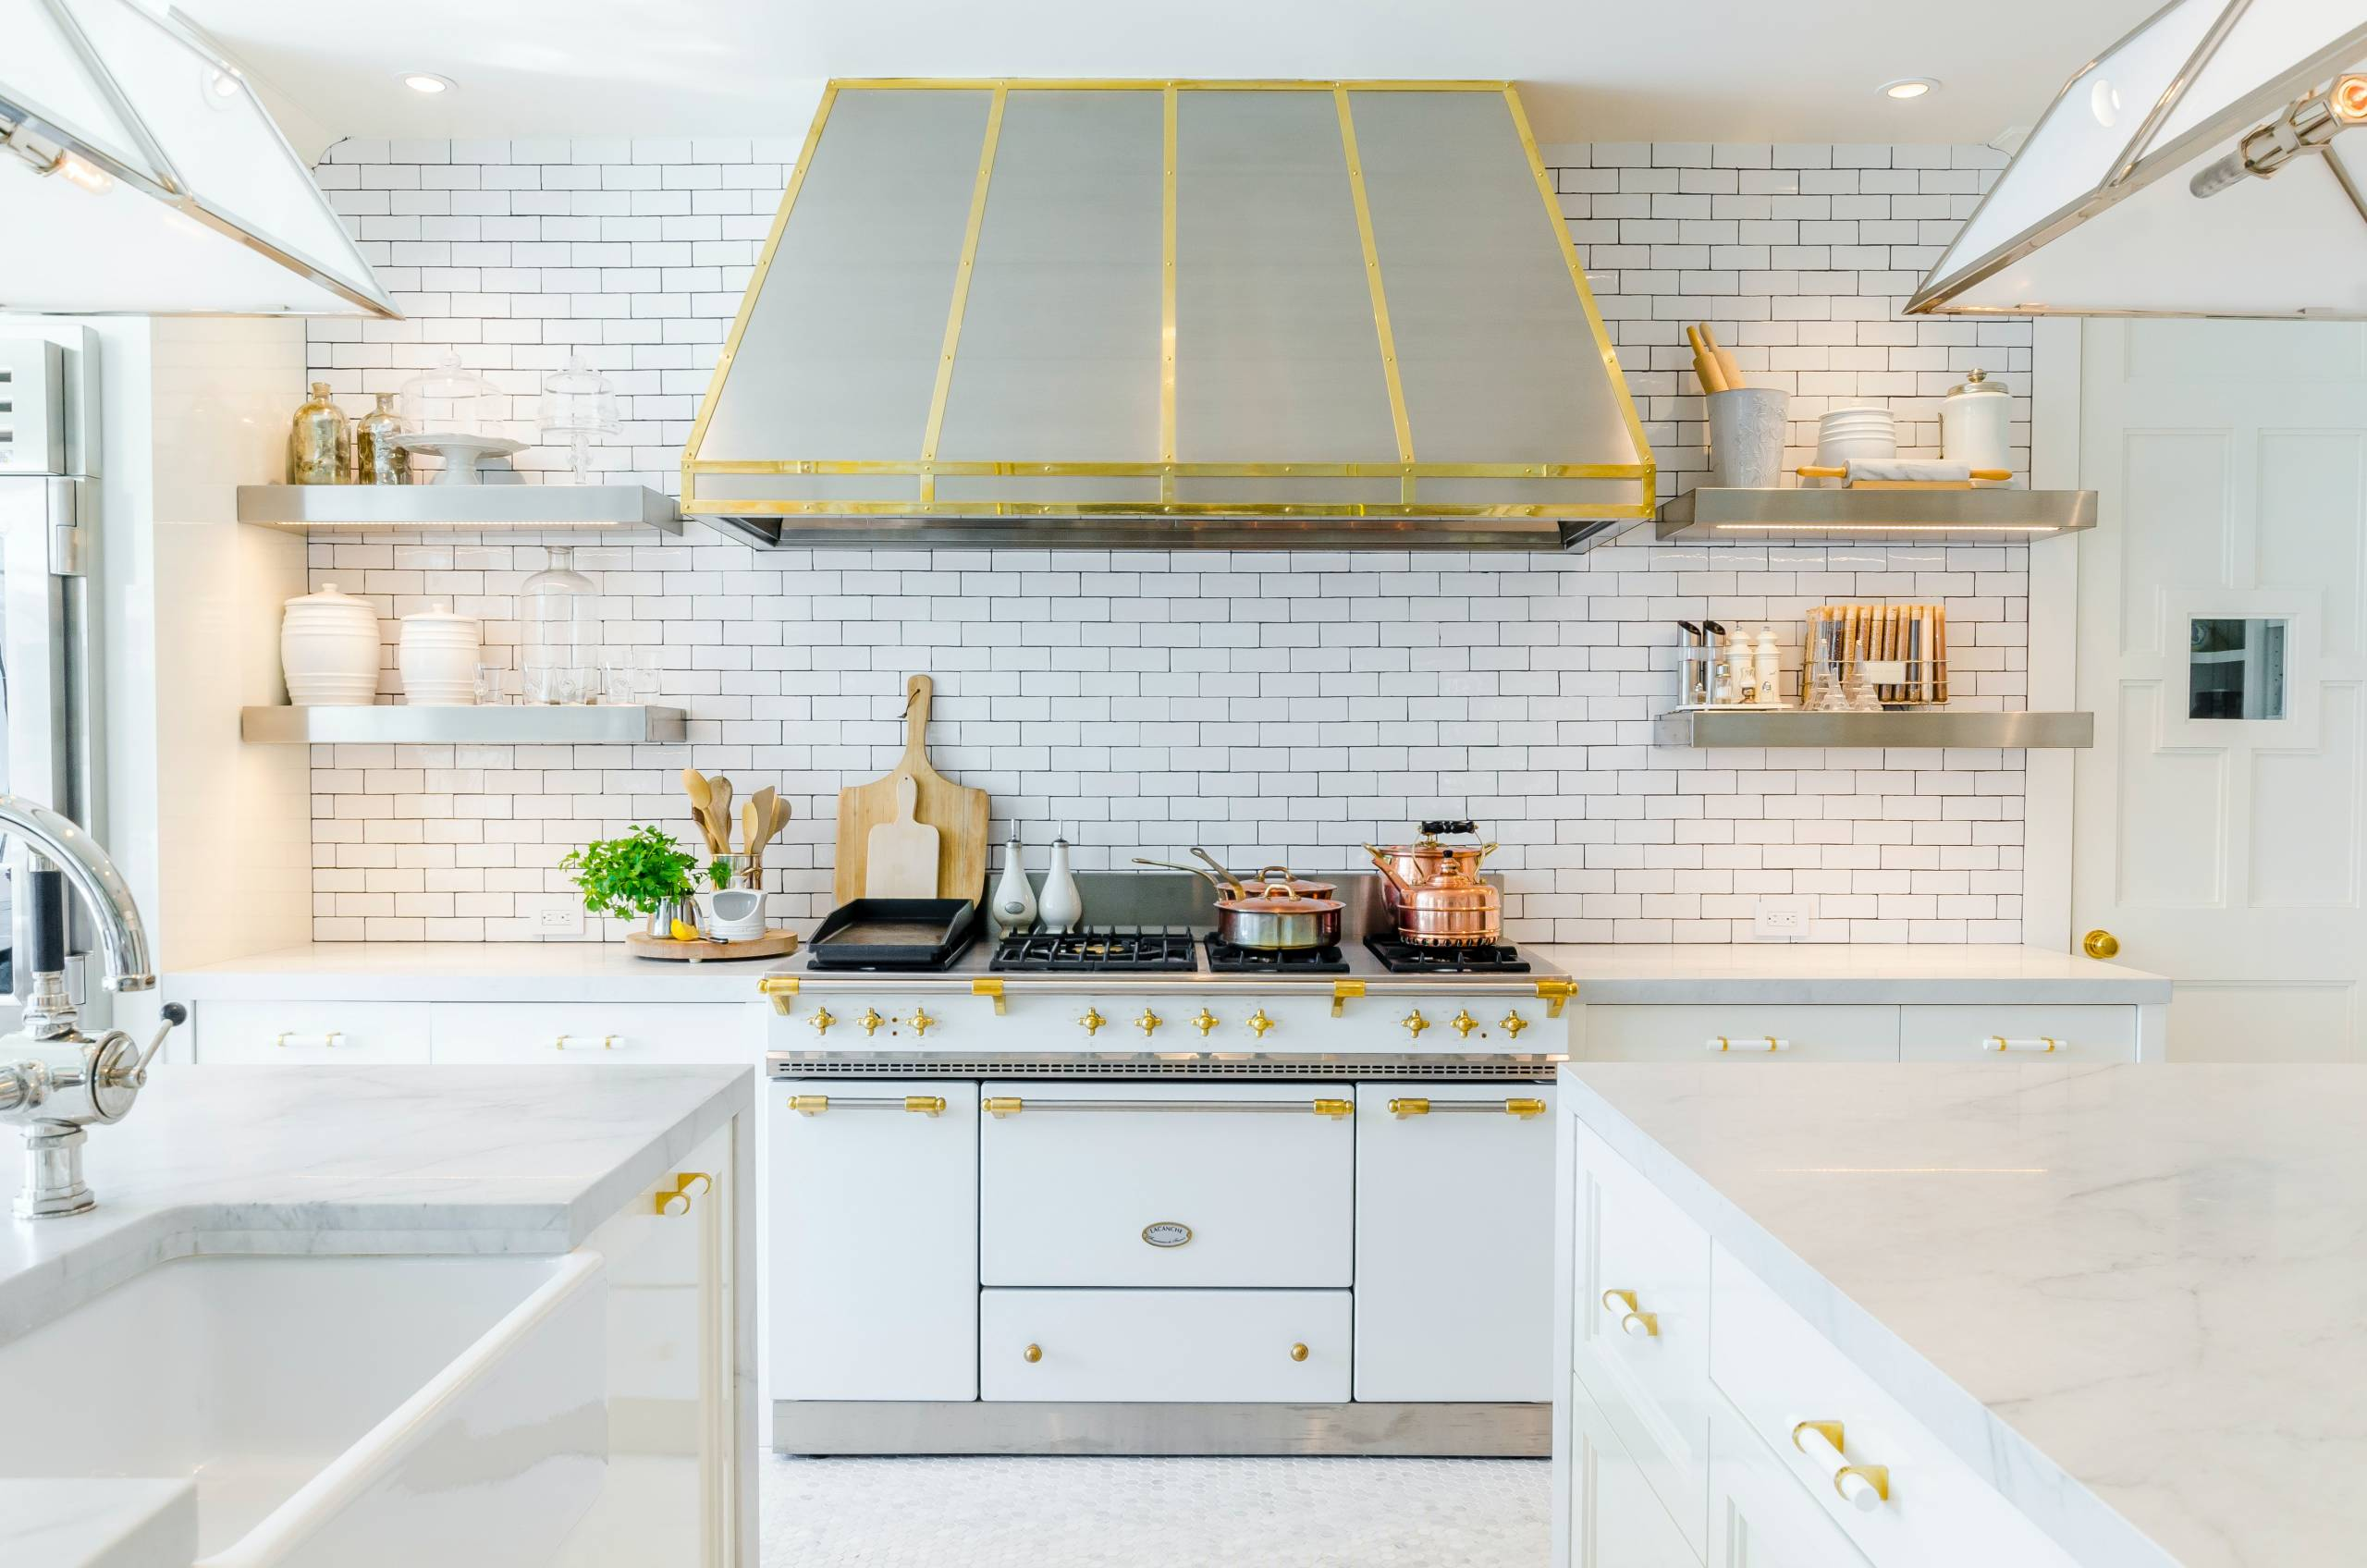 Get Started On Creating An Efficient Kitchen With These Beautifully Designed, Time-Saving Gadgets